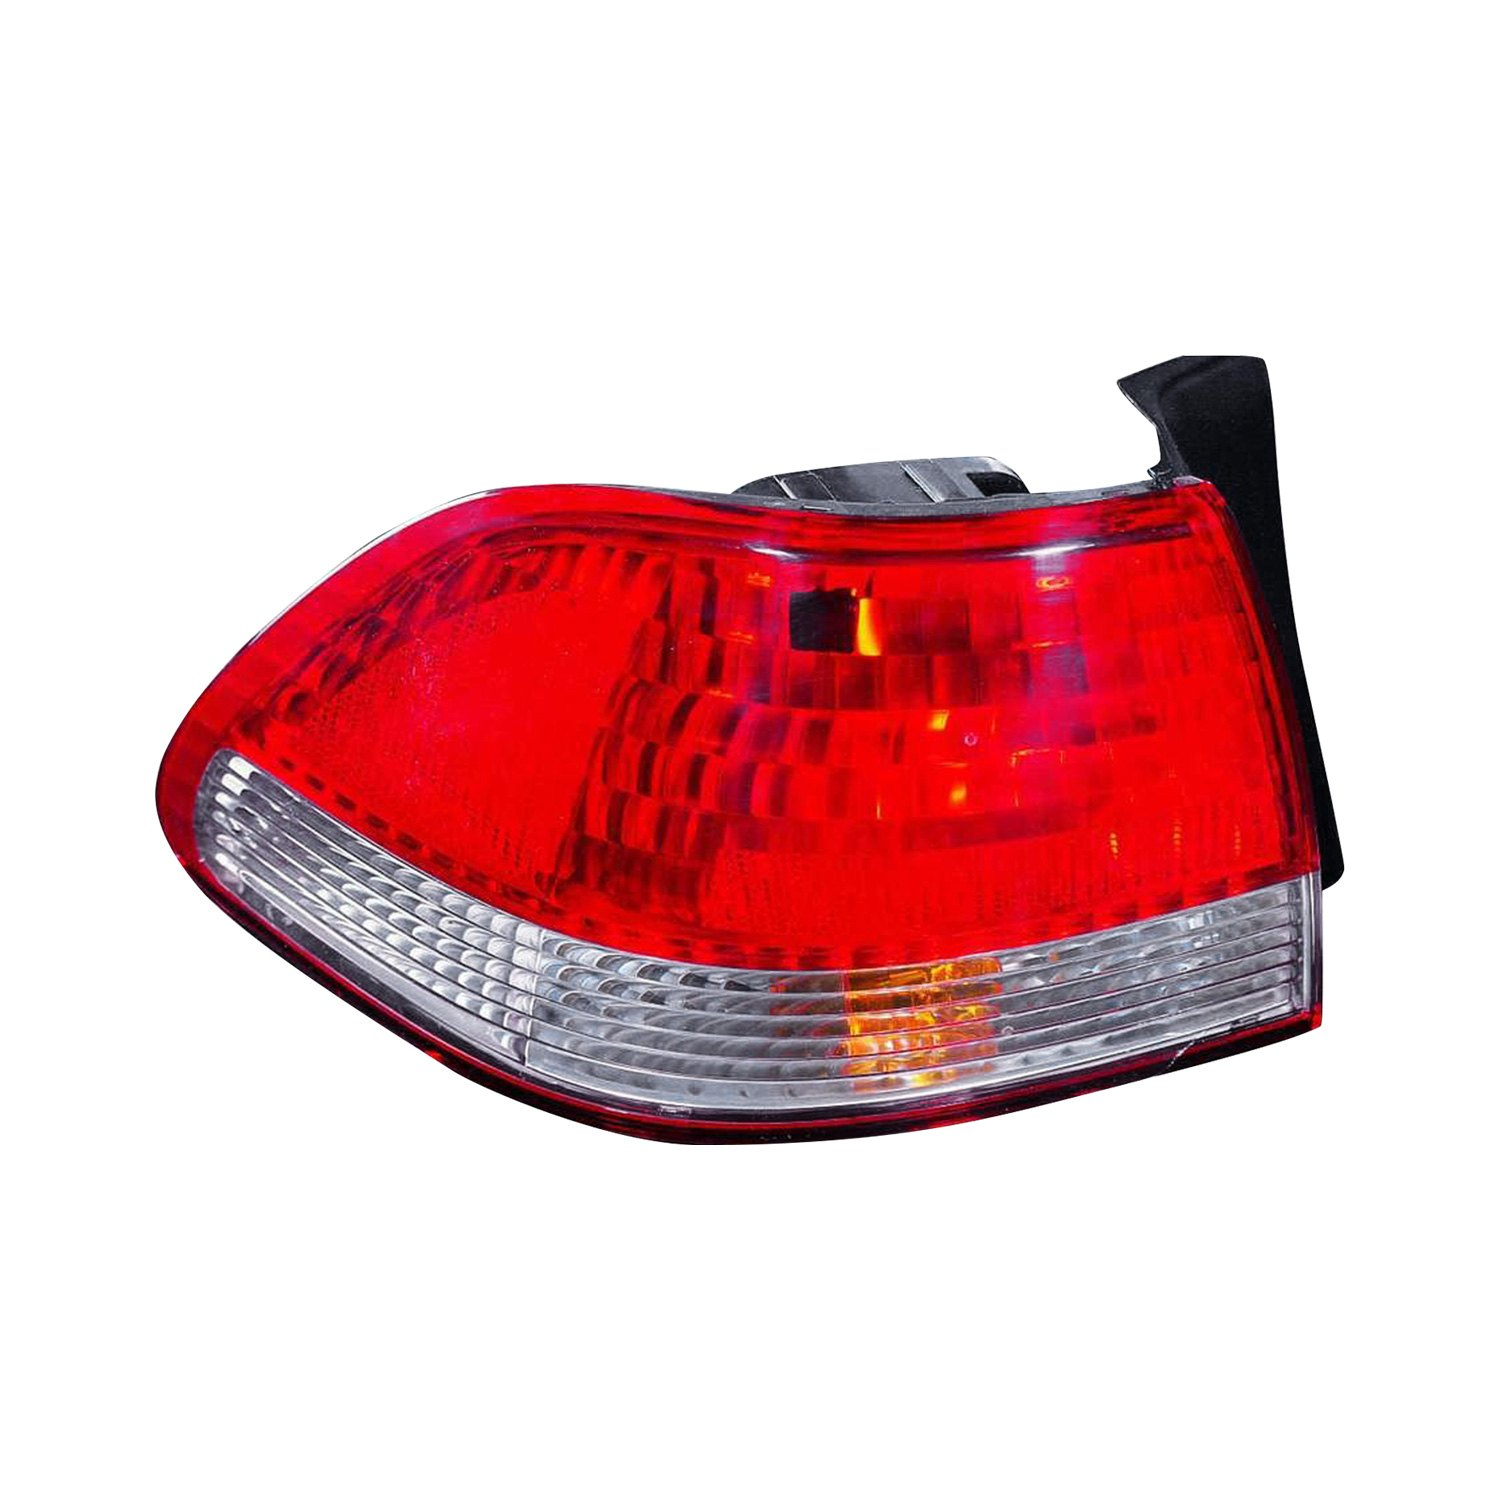 A new Accord tail lamp assembly encapsulates your vehicle's rear light indicators, often consisting of turn signals, reverse lights and brake lights.